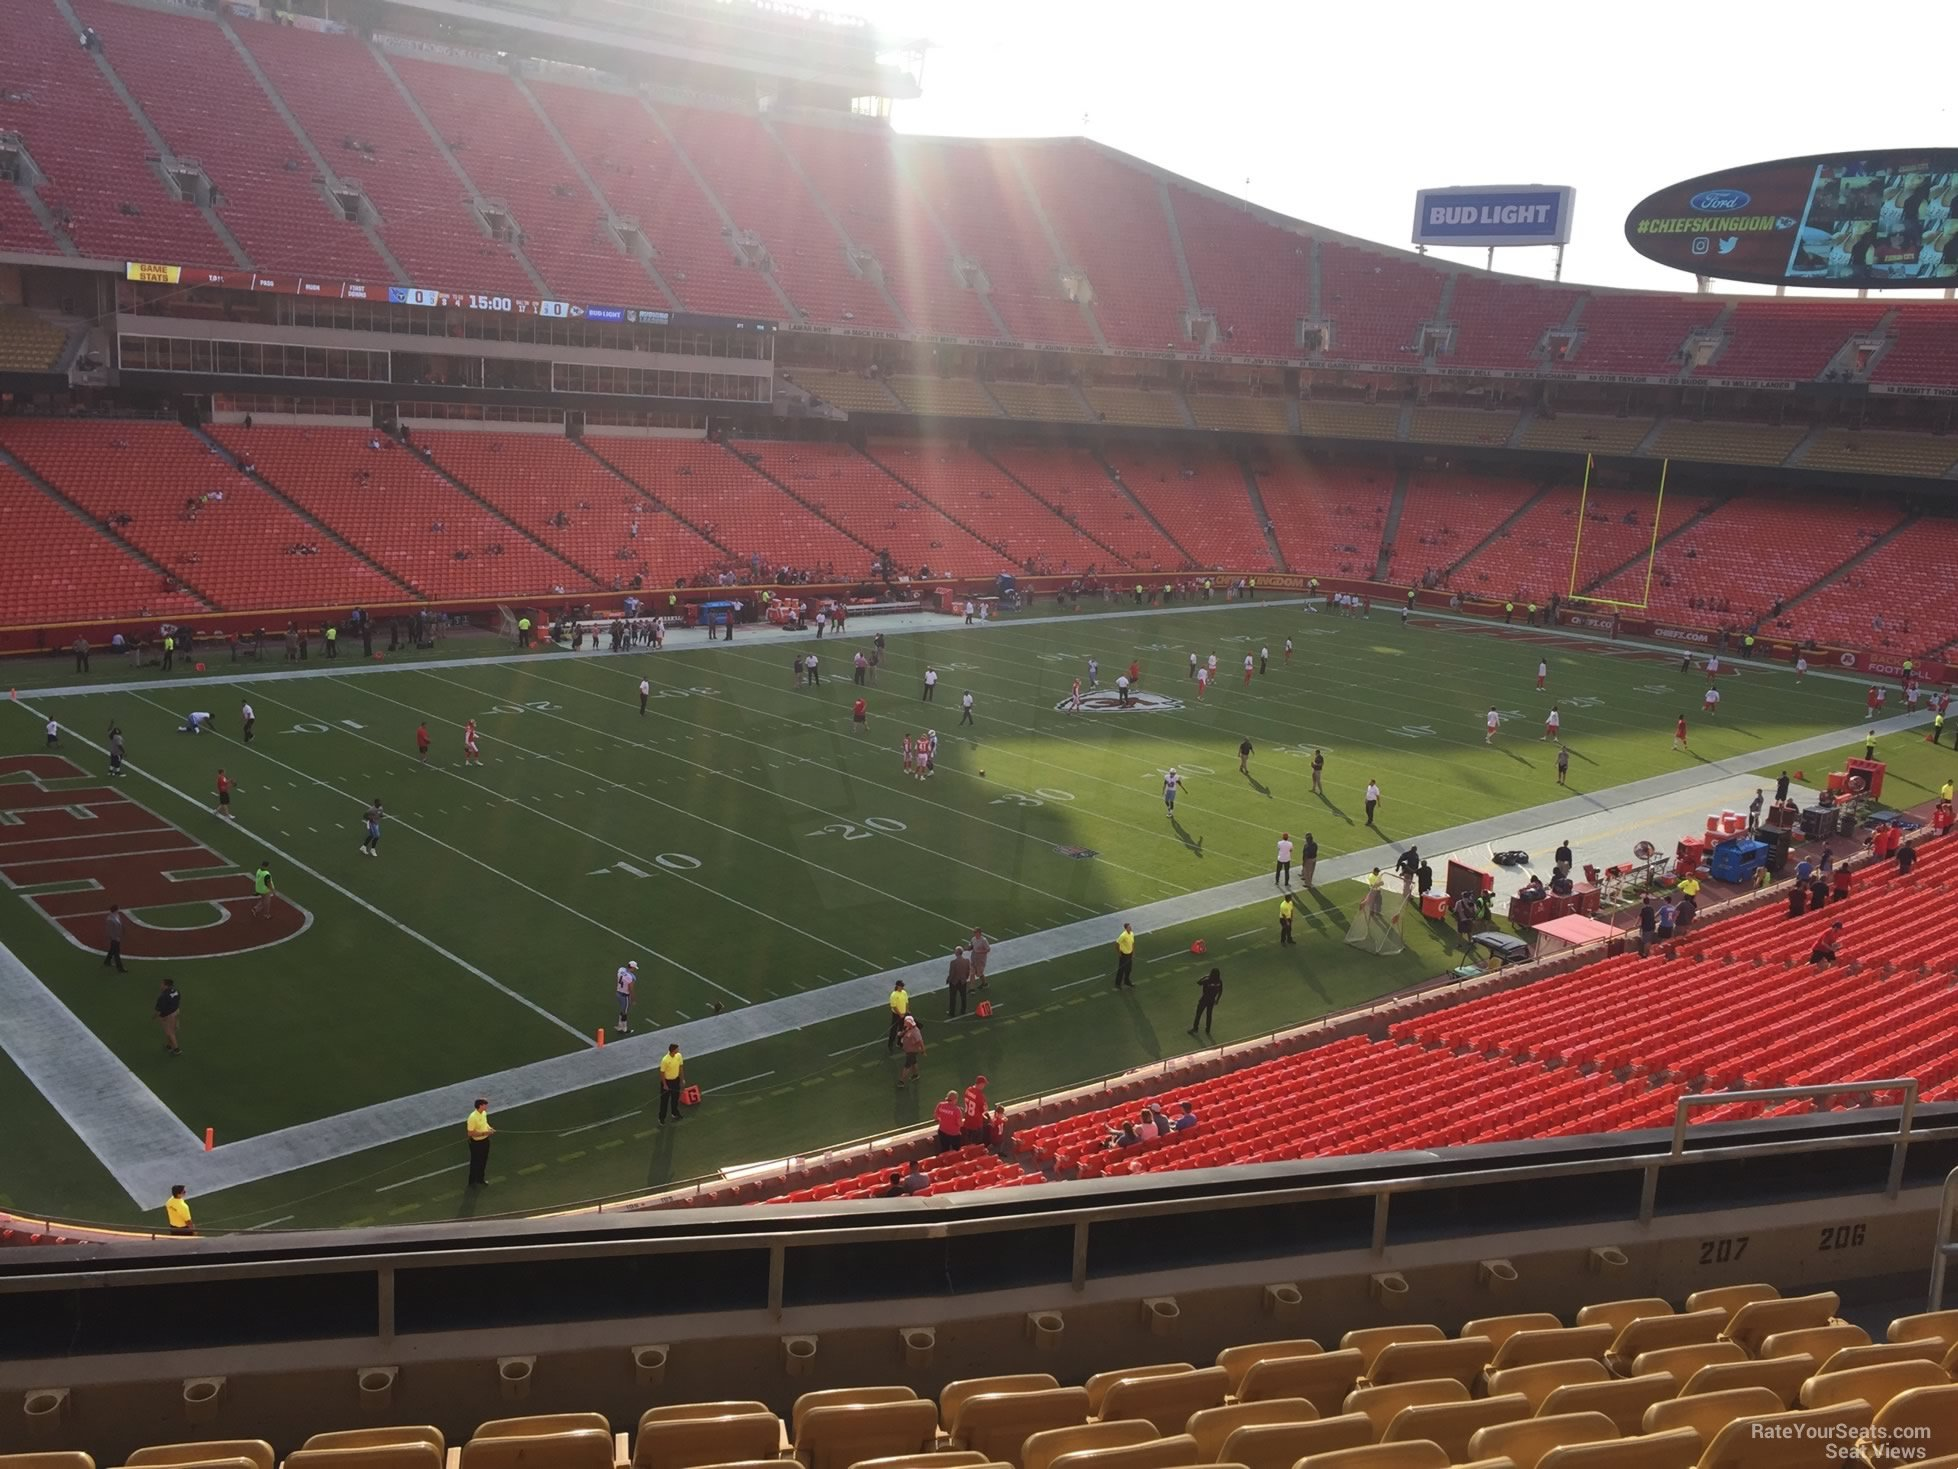 Seat View for Arrowhead Stadium Section 207, Row 7